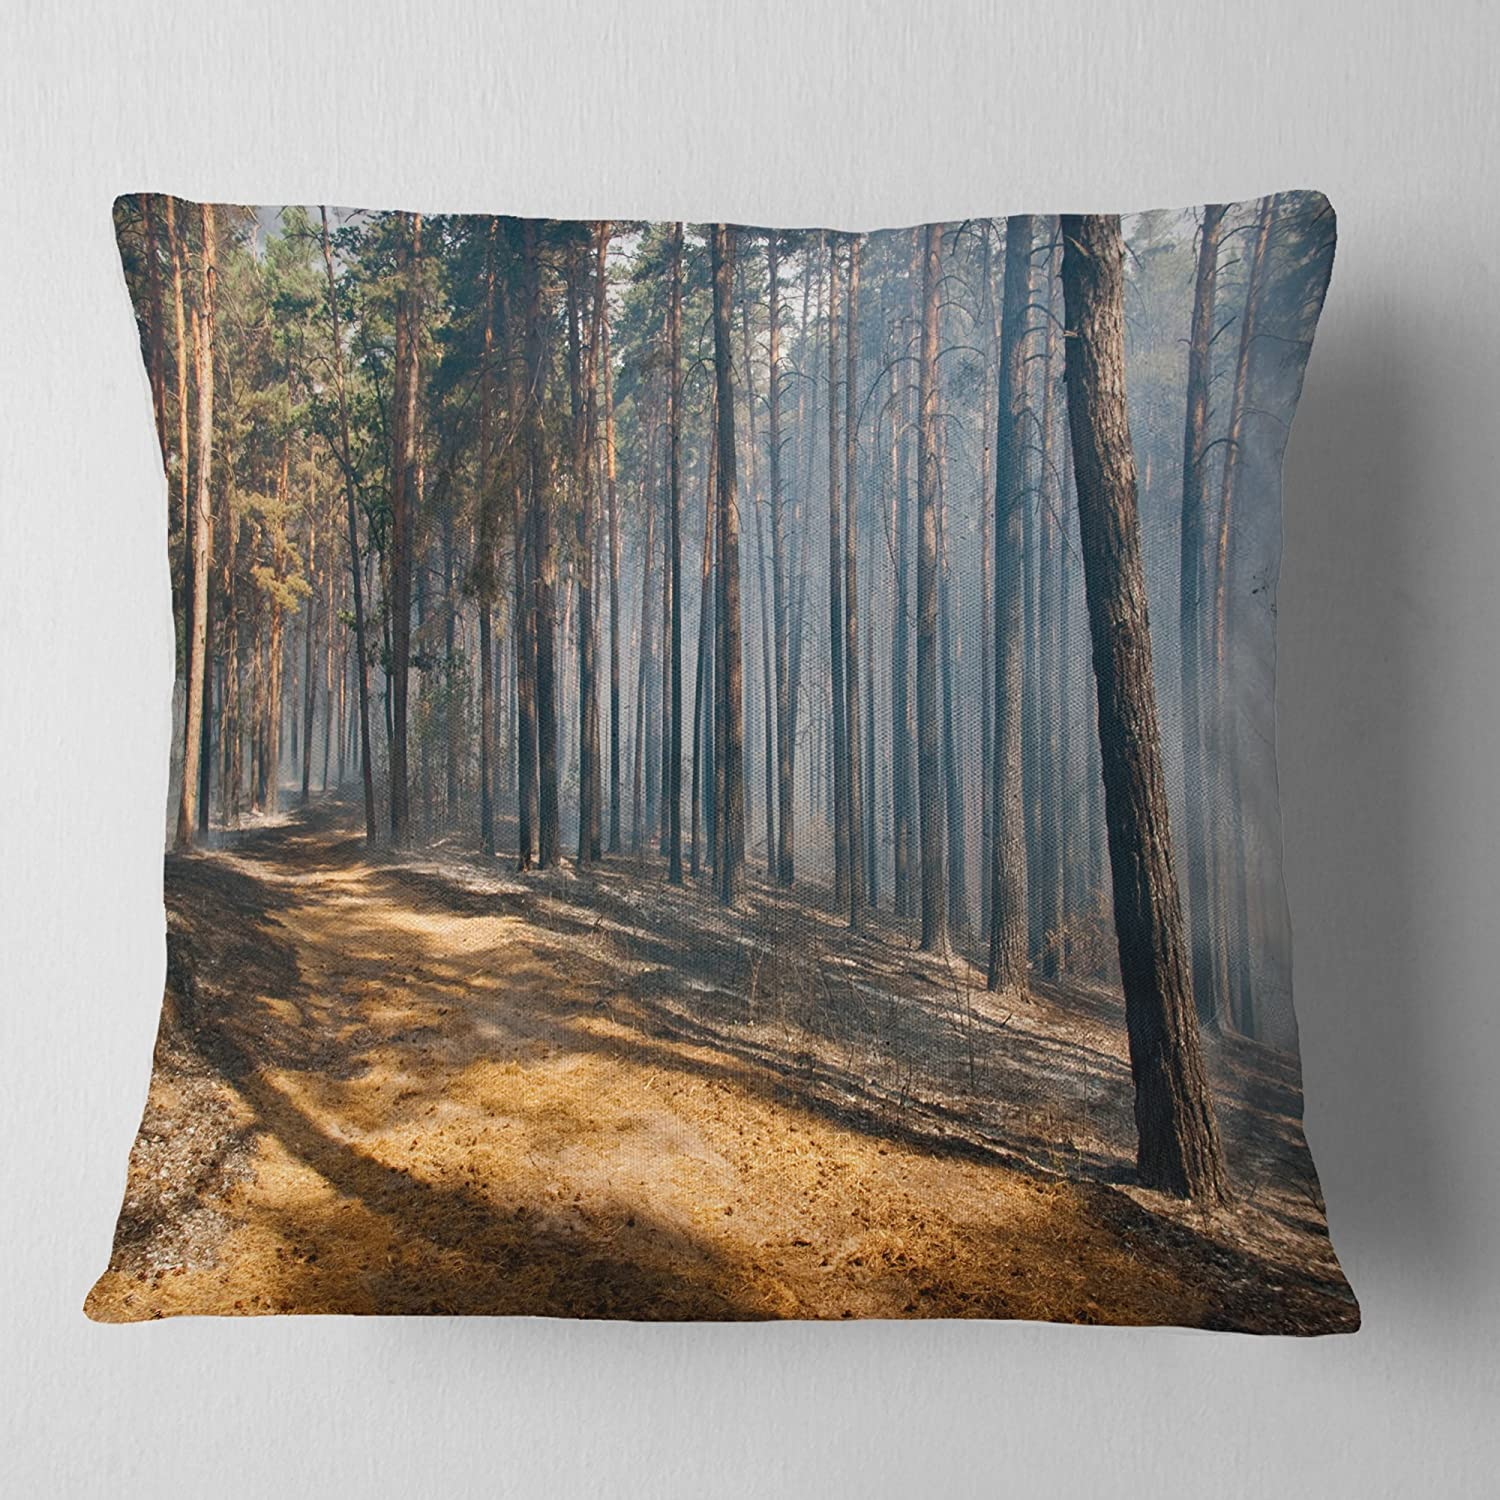 Sofa Throw Pillow 18 x 18 Designart CU13926-18-18 Fire Flame and Smoke Modern Forest Cushion Cover for Living Room